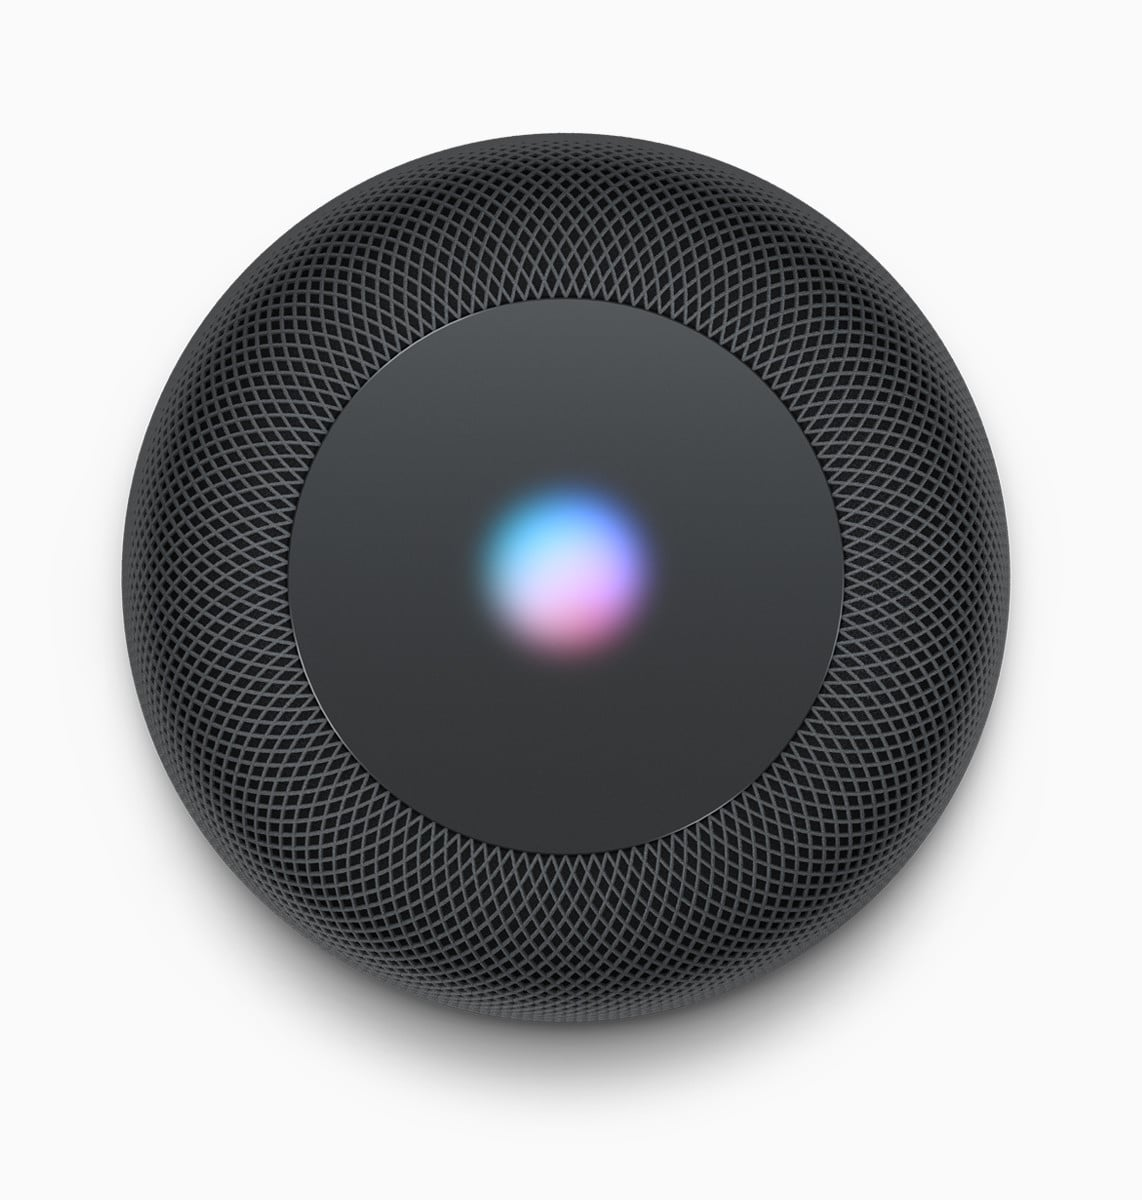 Apple's HomePod speaker delayed to 2018